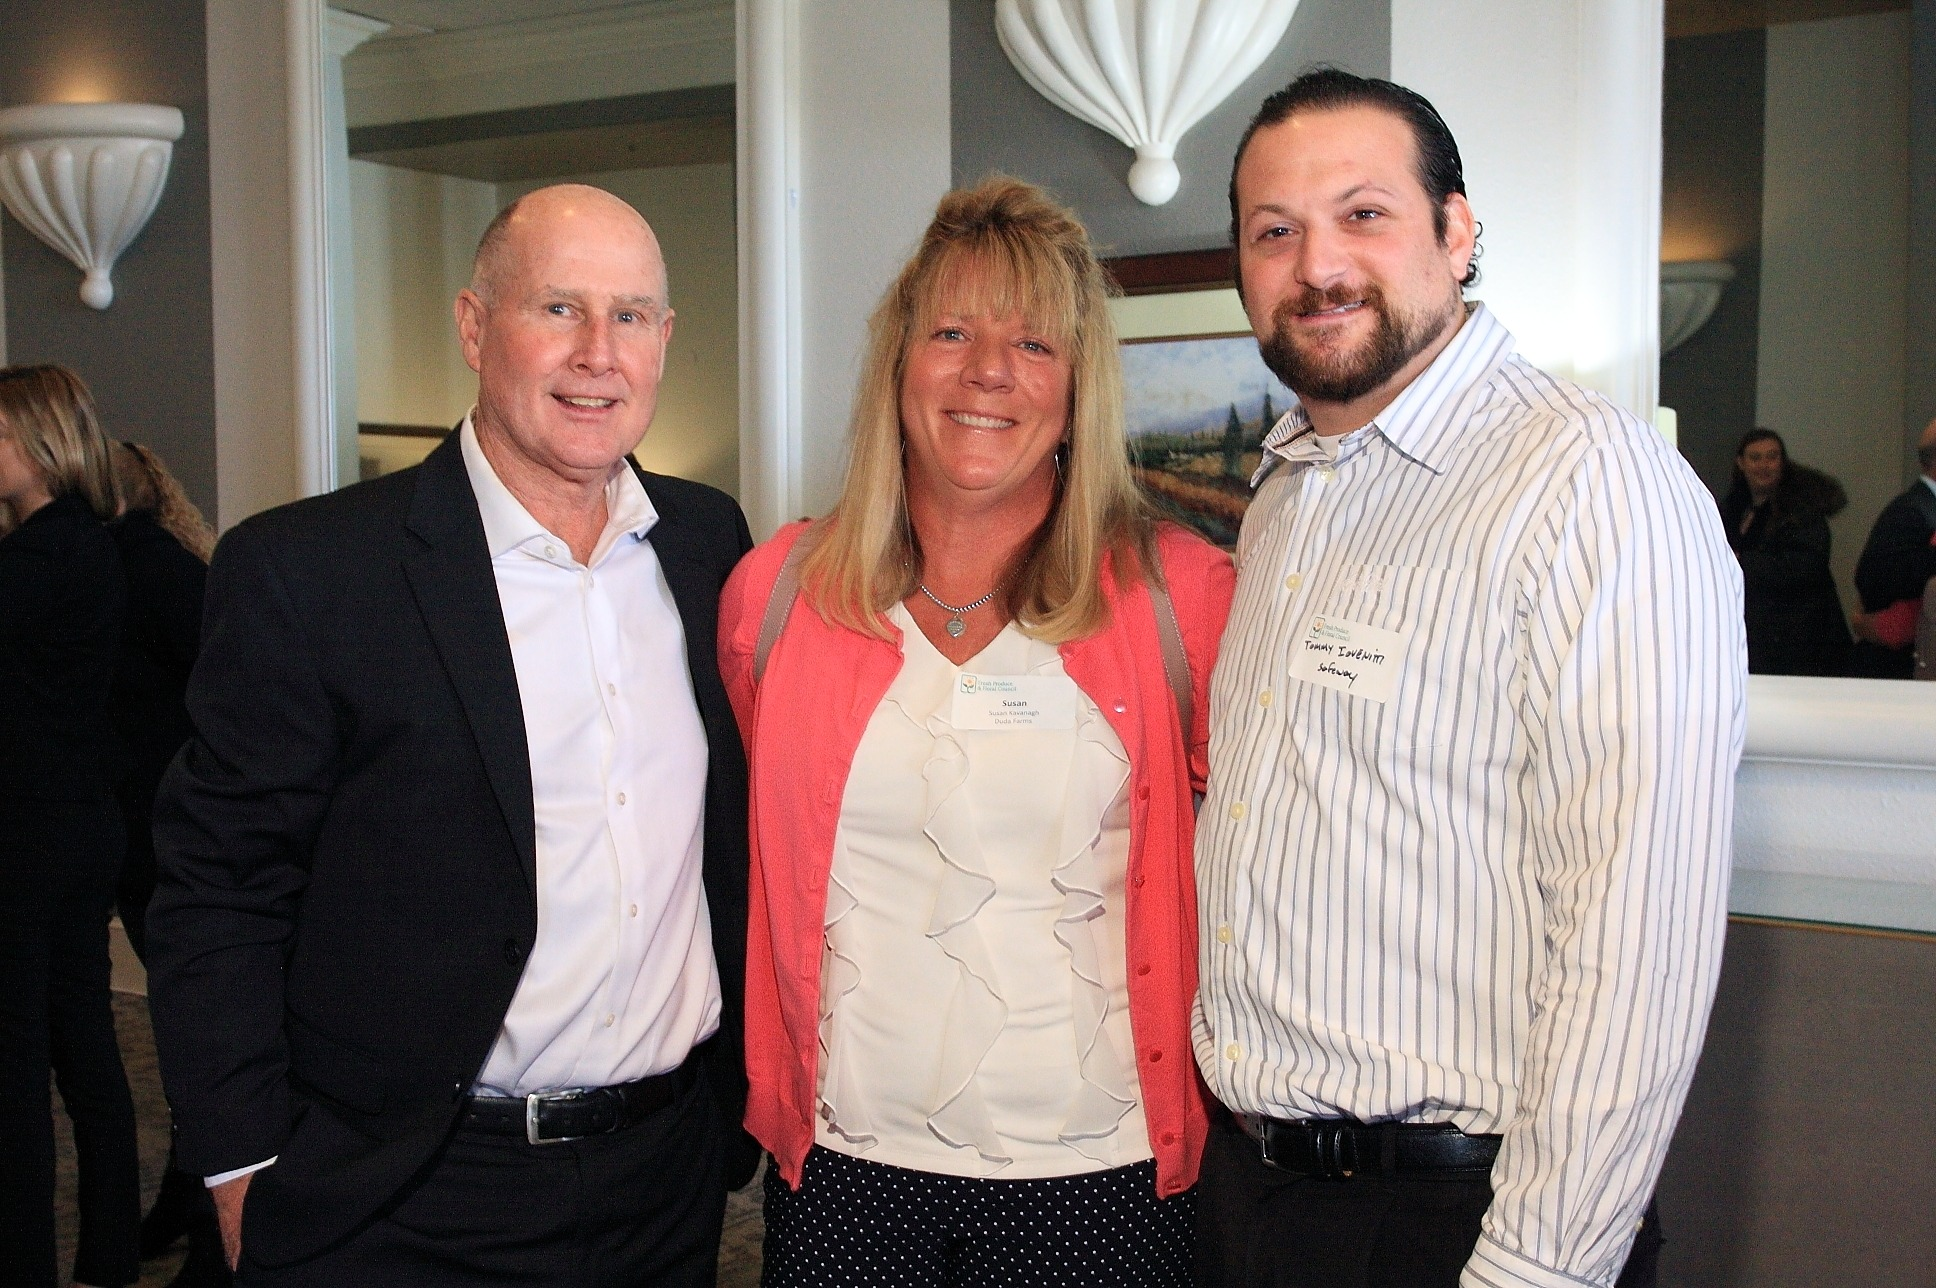 Davie Haubert of FreshSource, LLC with Susan Kavanagh from Duda Farms and Tommy Iovenitti from Safeway